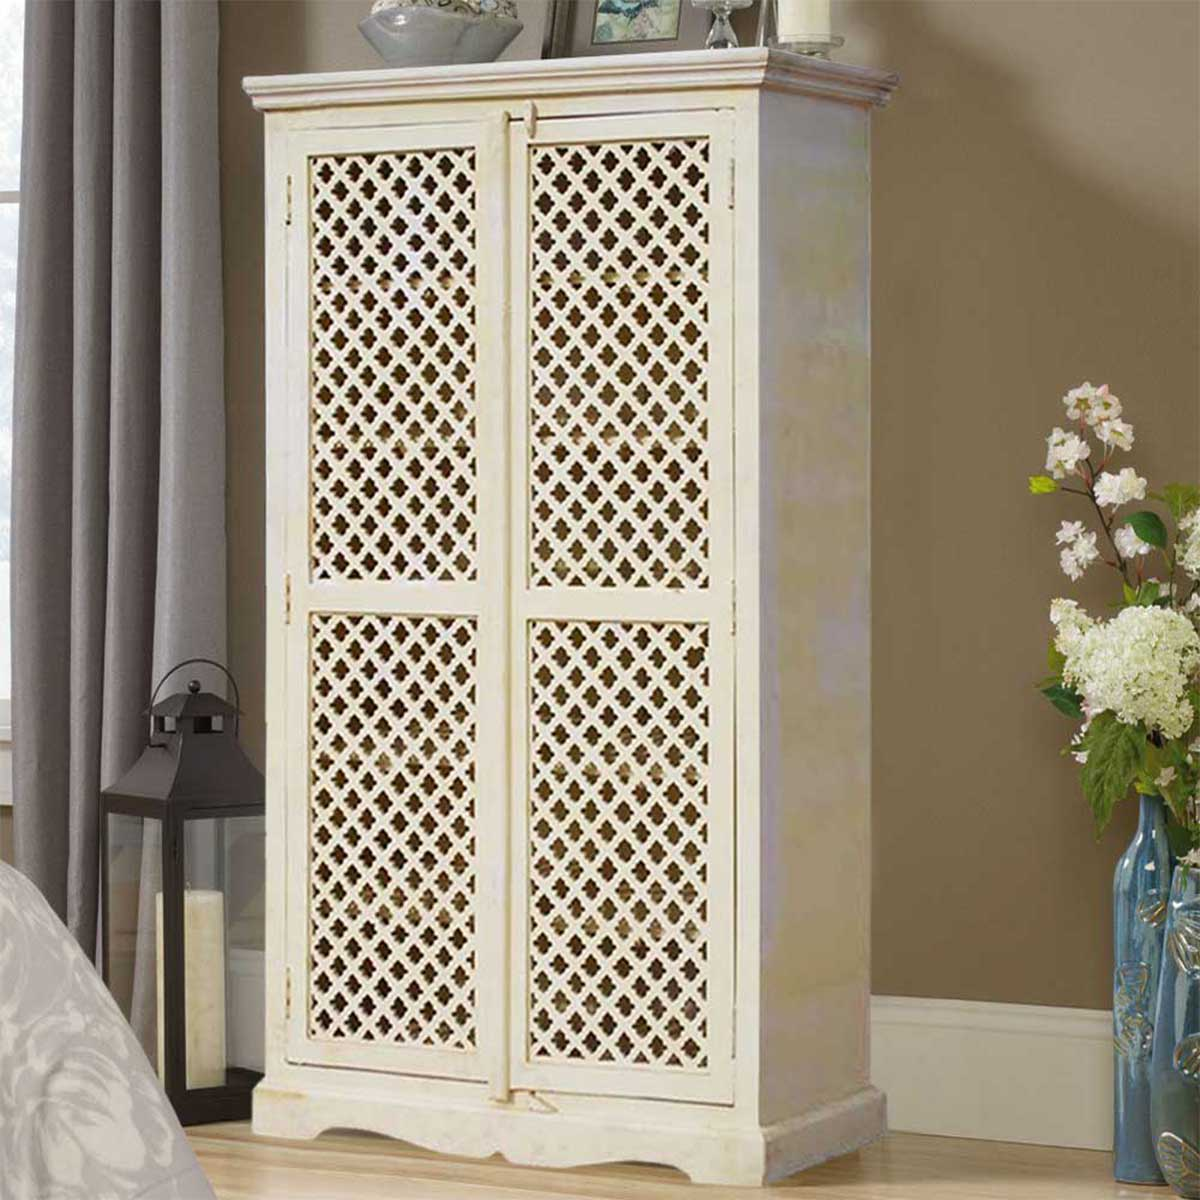 Farmhouse White Solid Wood Lattice Door Armoire  sc 1 st  Sierra Living Concepts & White Solid Wood Lattice Door Armoire